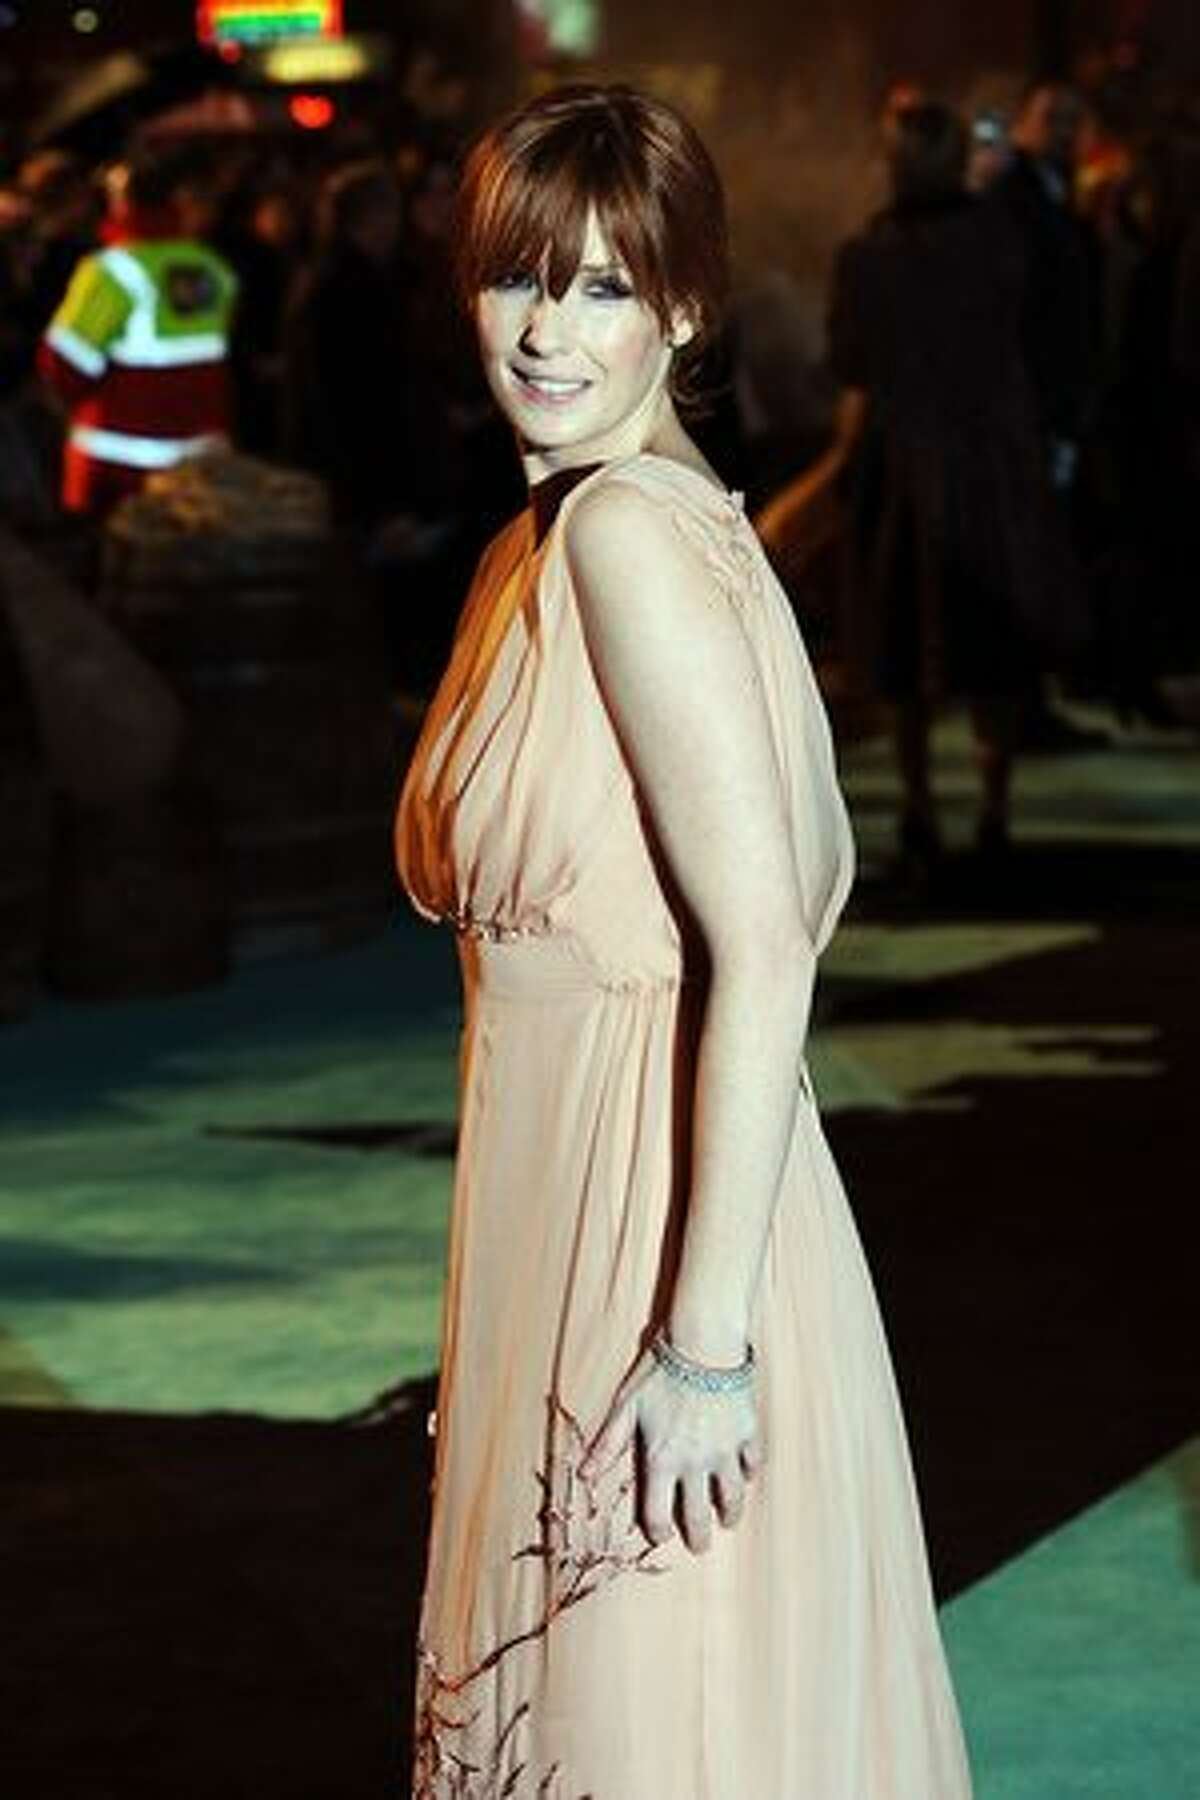 Kelly Reilly attends the world premiere of Sherlock Holmes at Empire Leicester Square in London, England.